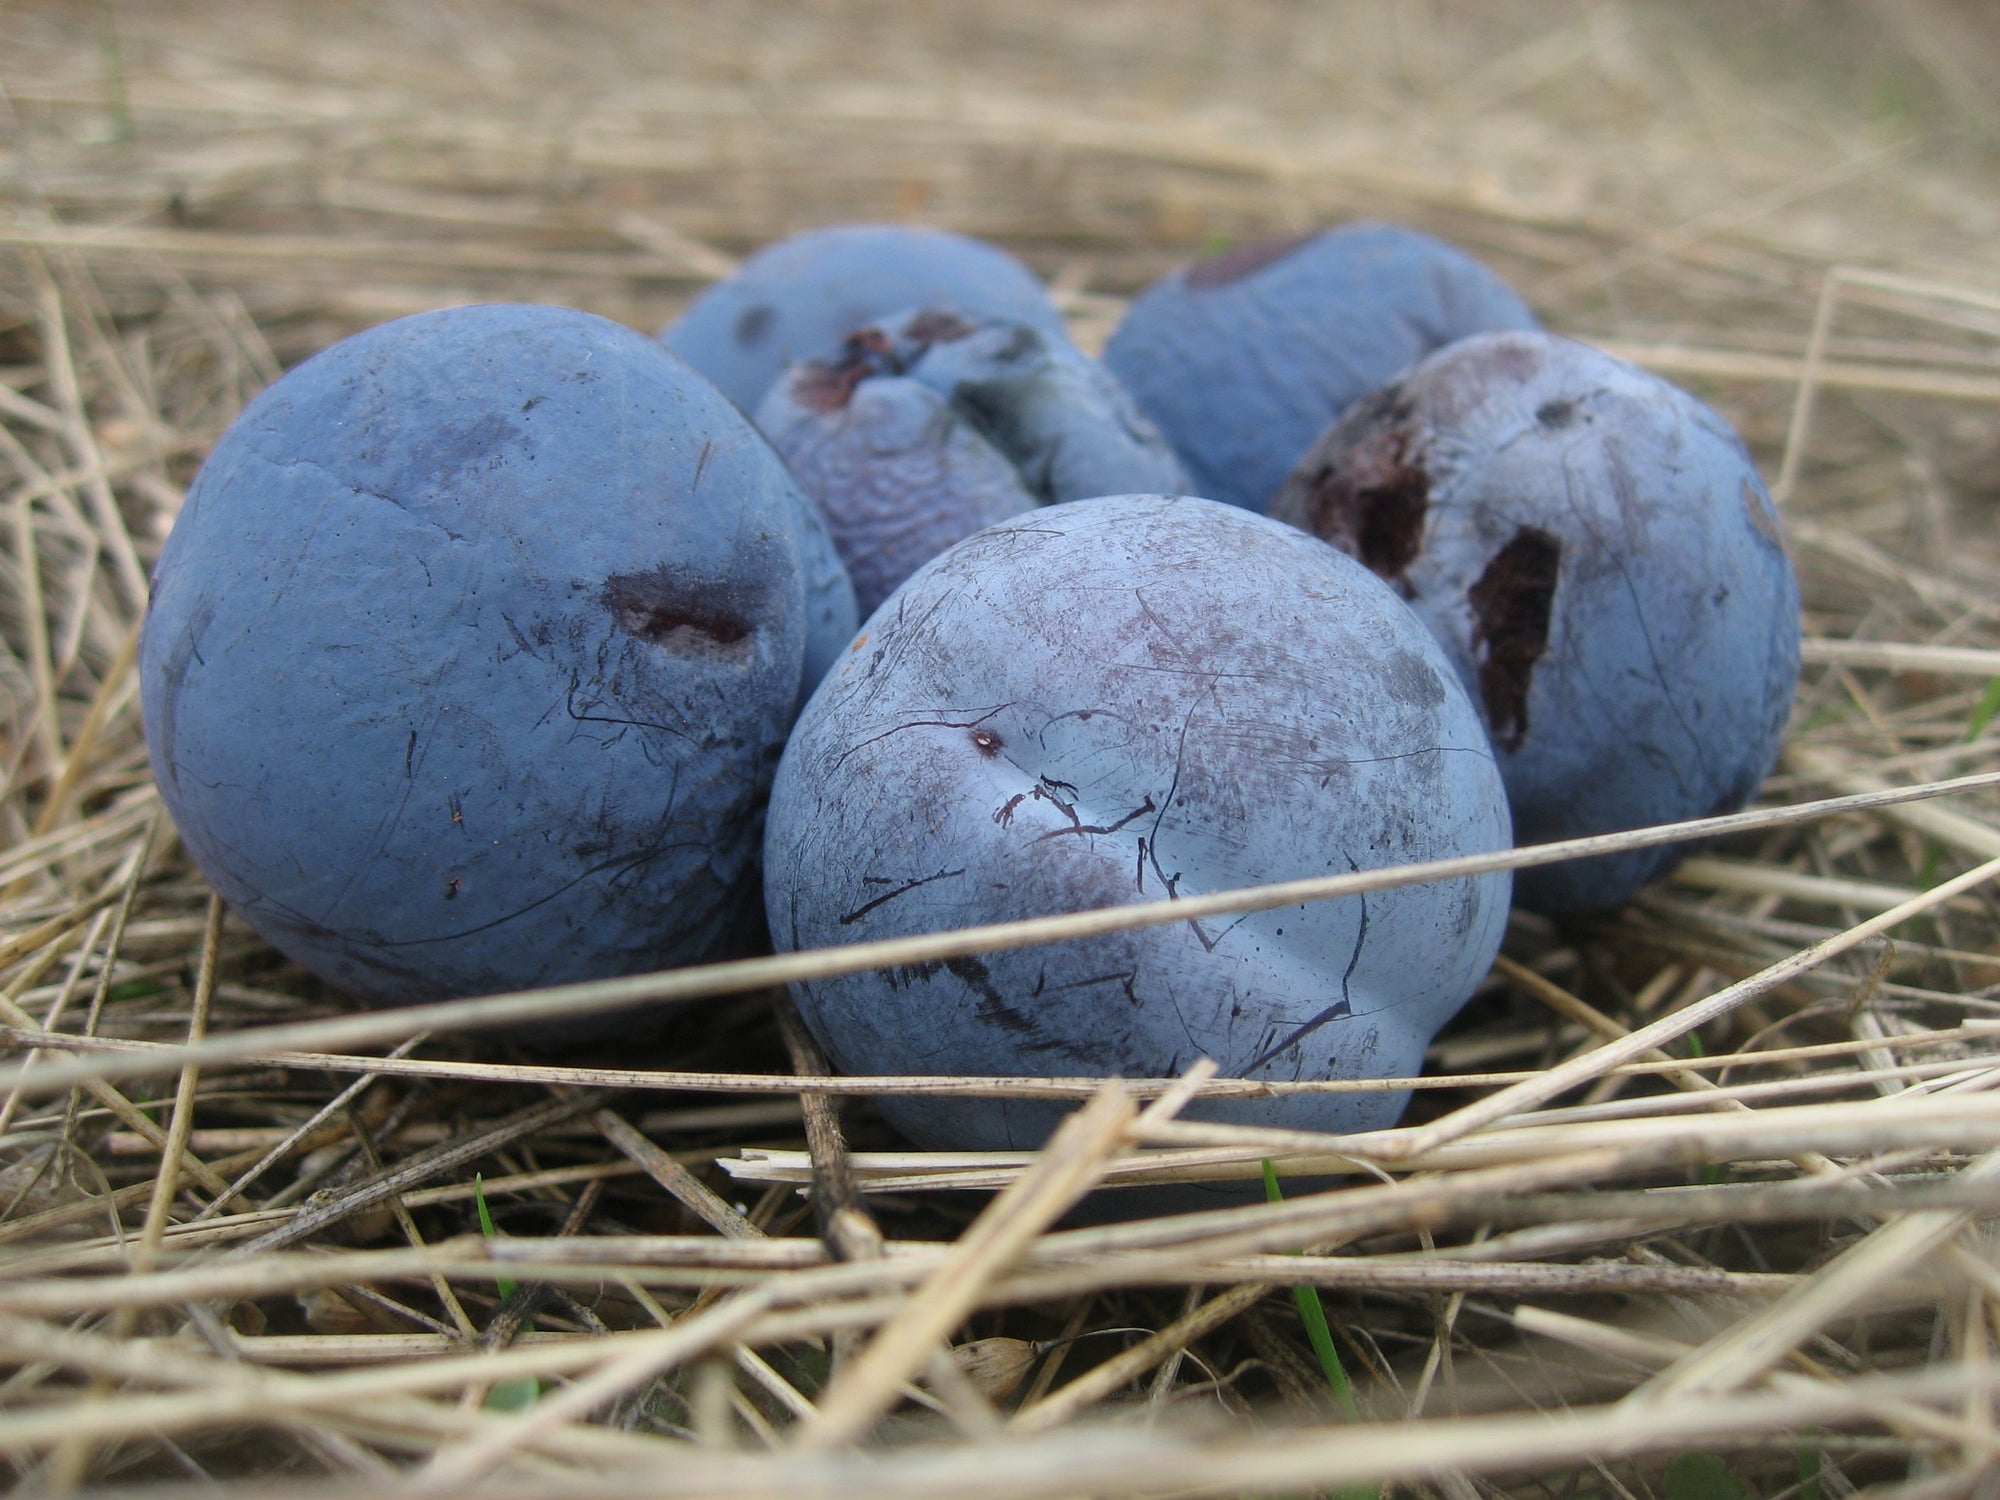 <I>Blue Damson (Plums)</I><br>Mendocino, California, 2010<br><br>GC0228